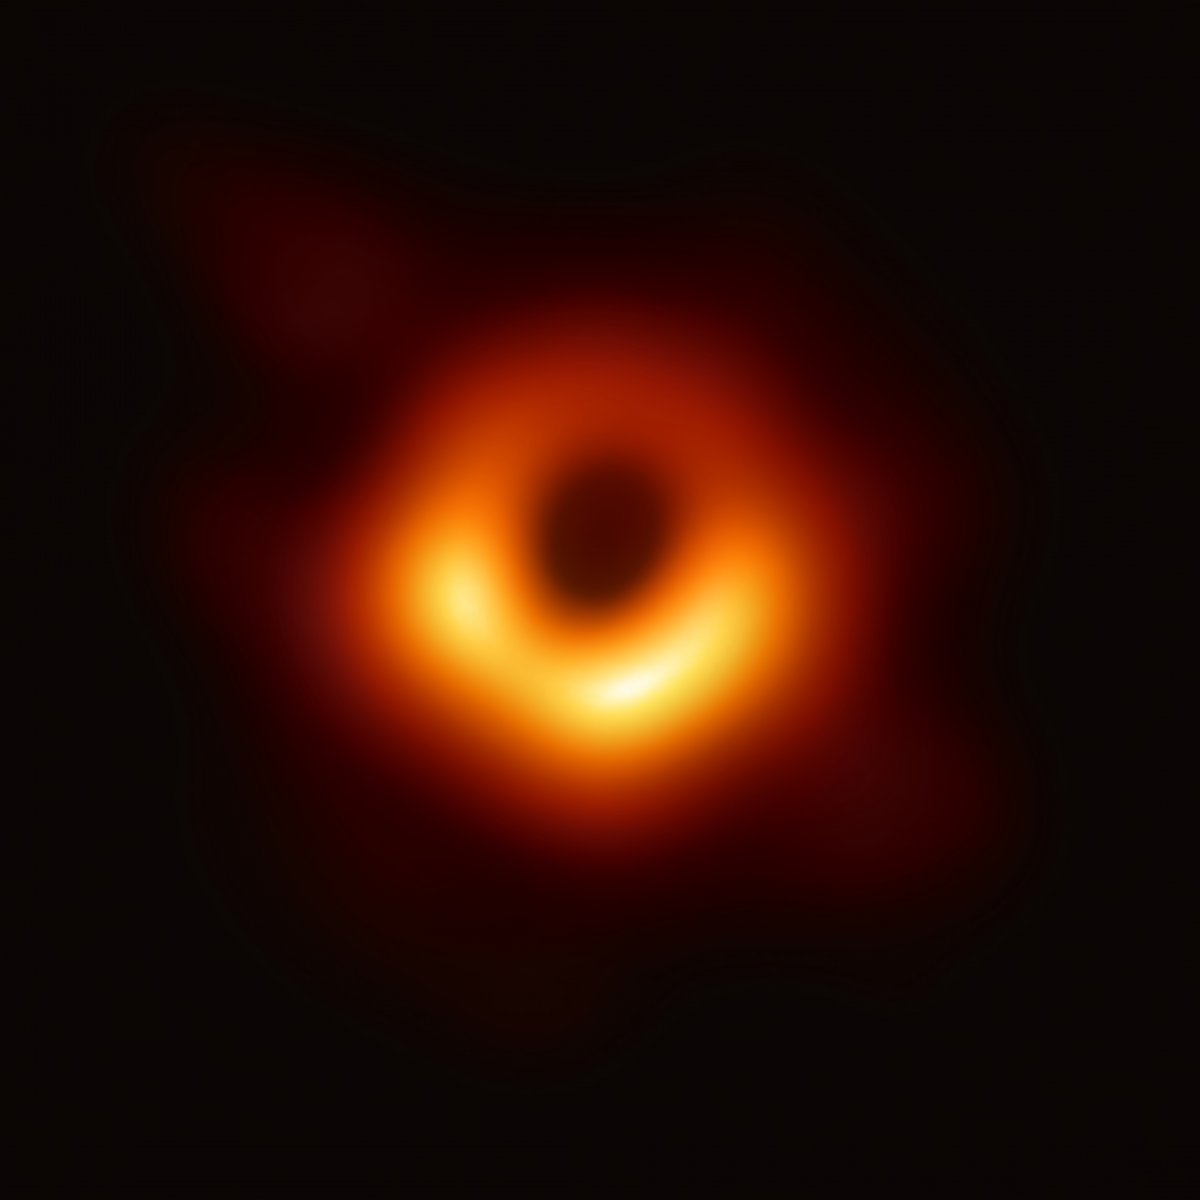 https://commons.wikimedia.org/wiki/File:Black_hole_-_Messier_87_crop_max_res.jpg